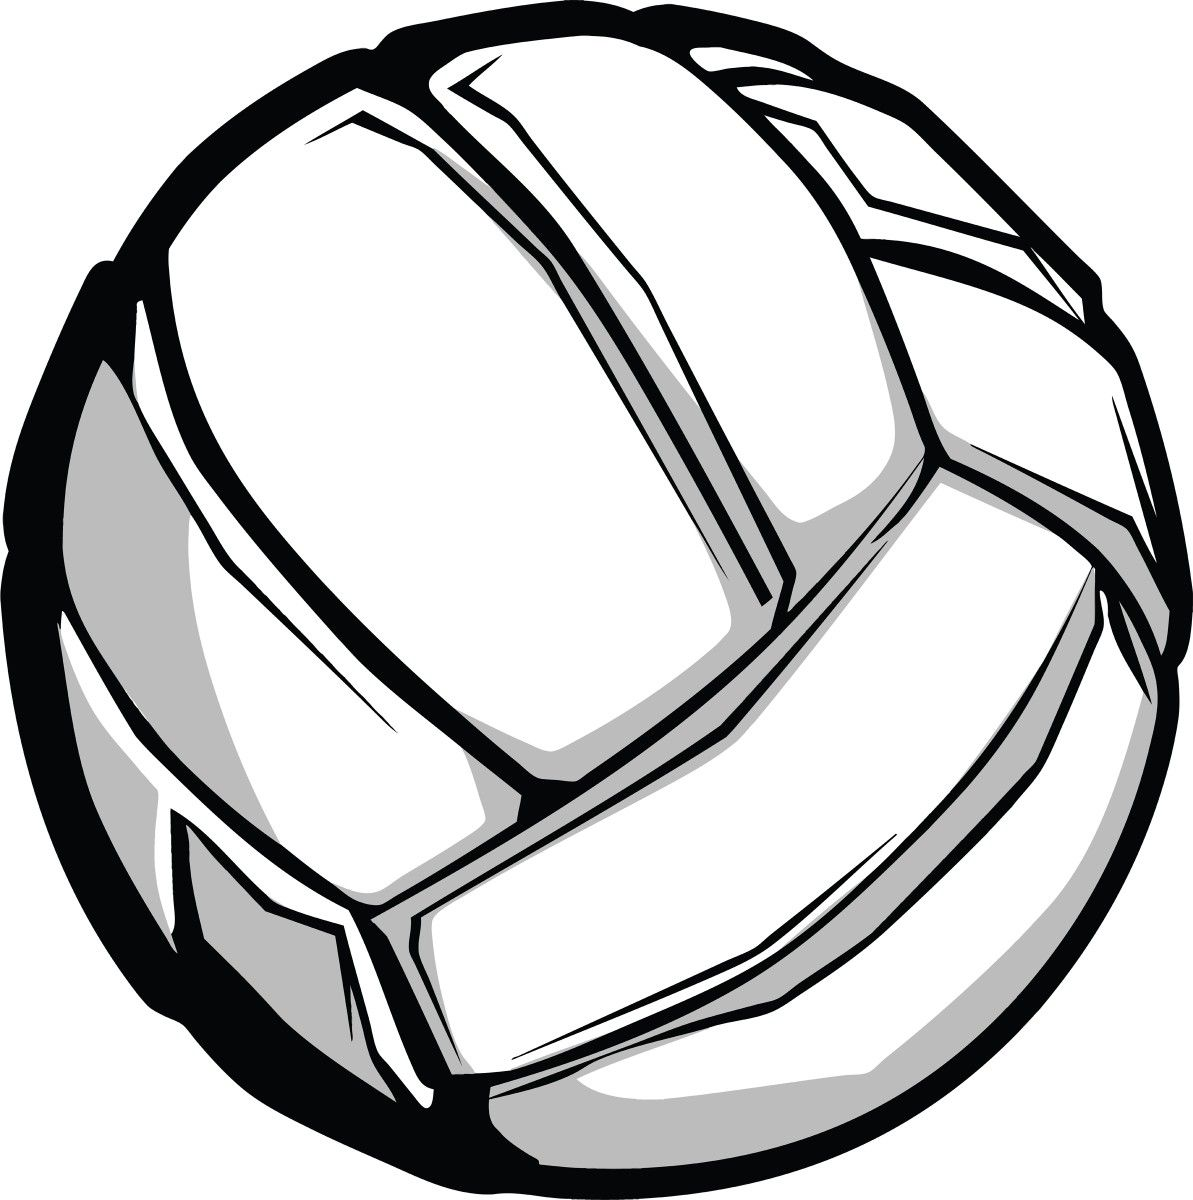 Pin By Neeley Shaffer On Volleyball With Images Volleyball Clipart Stock Art Free Clipart Images